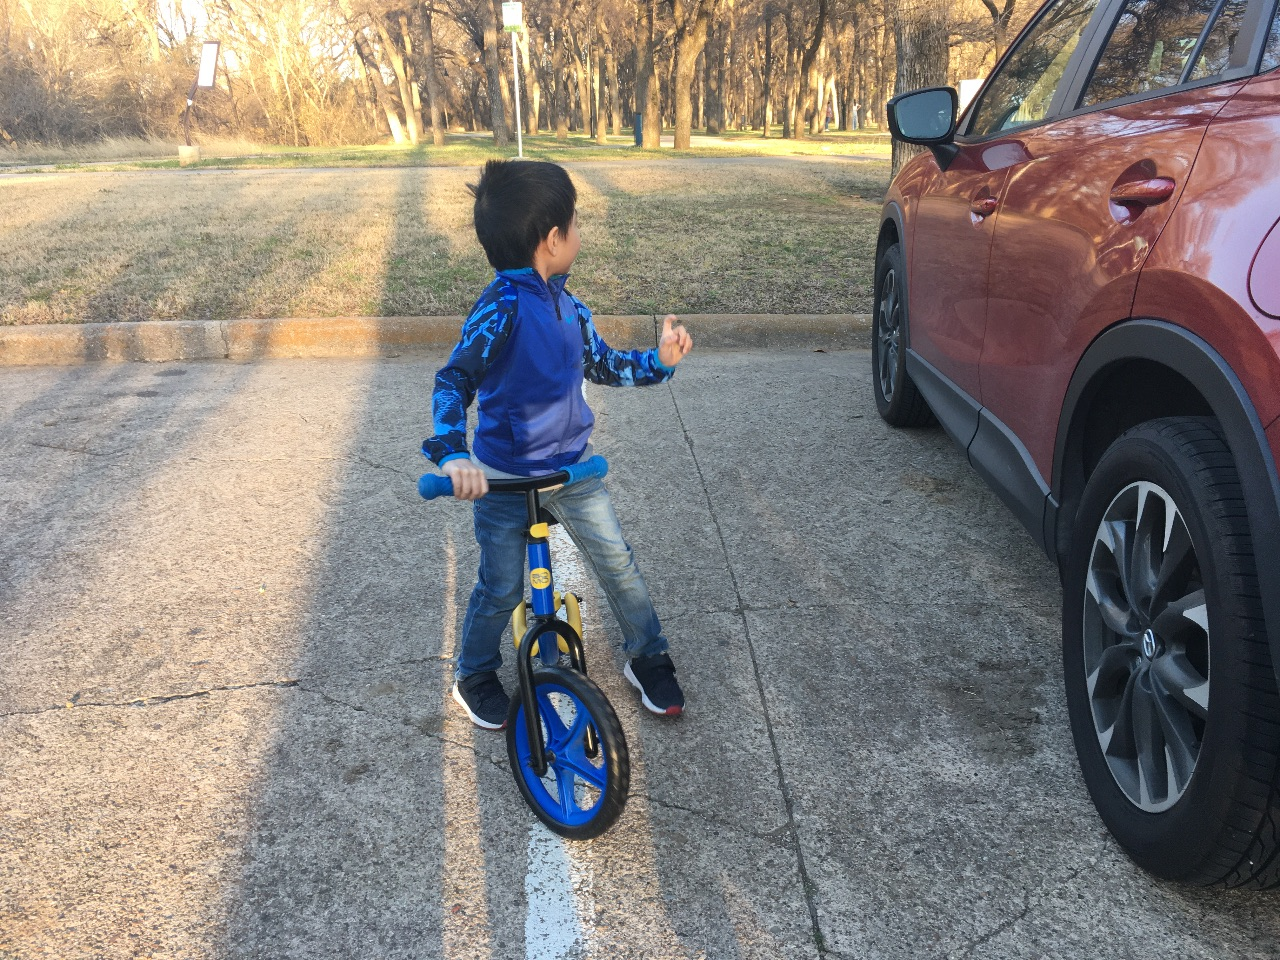 Davin excited to ride his balance bike at the park.